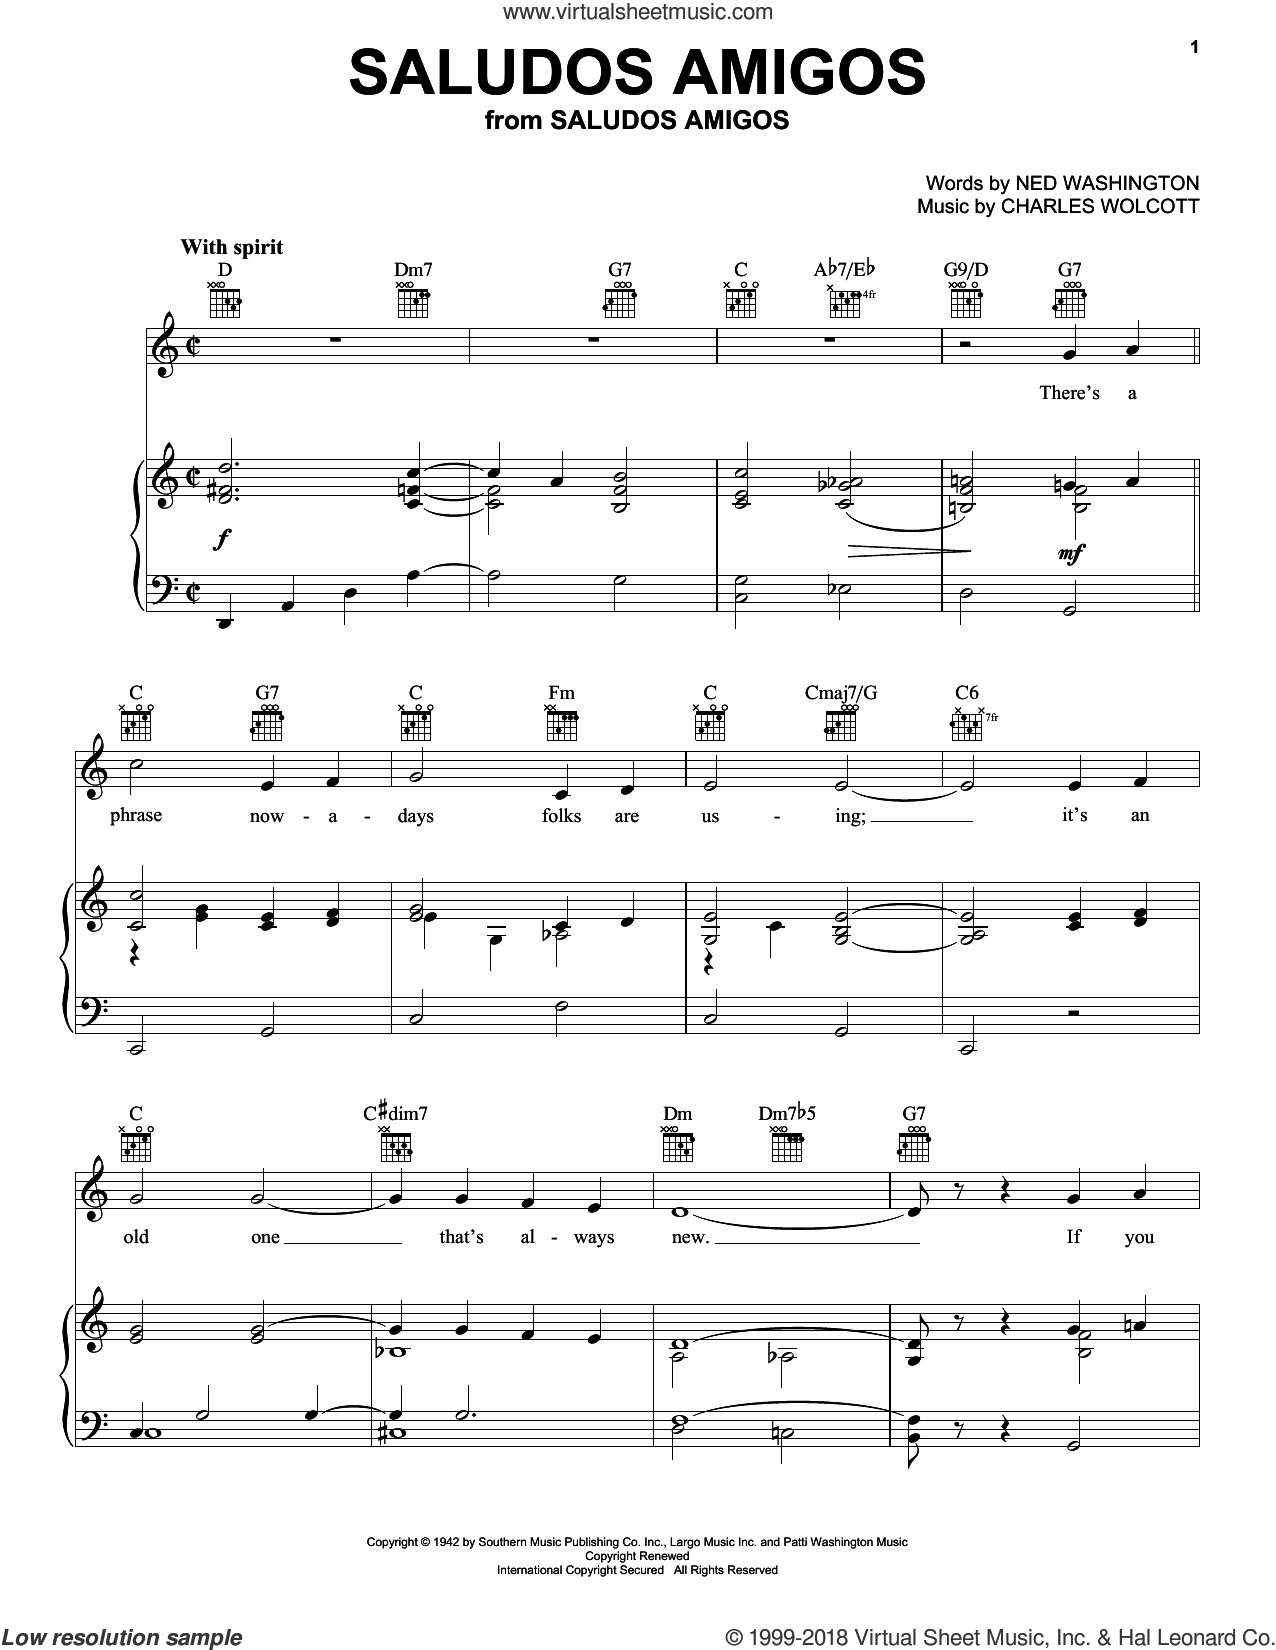 Saludos Amigos sheet music for voice, piano or guitar by Charles Wolcott